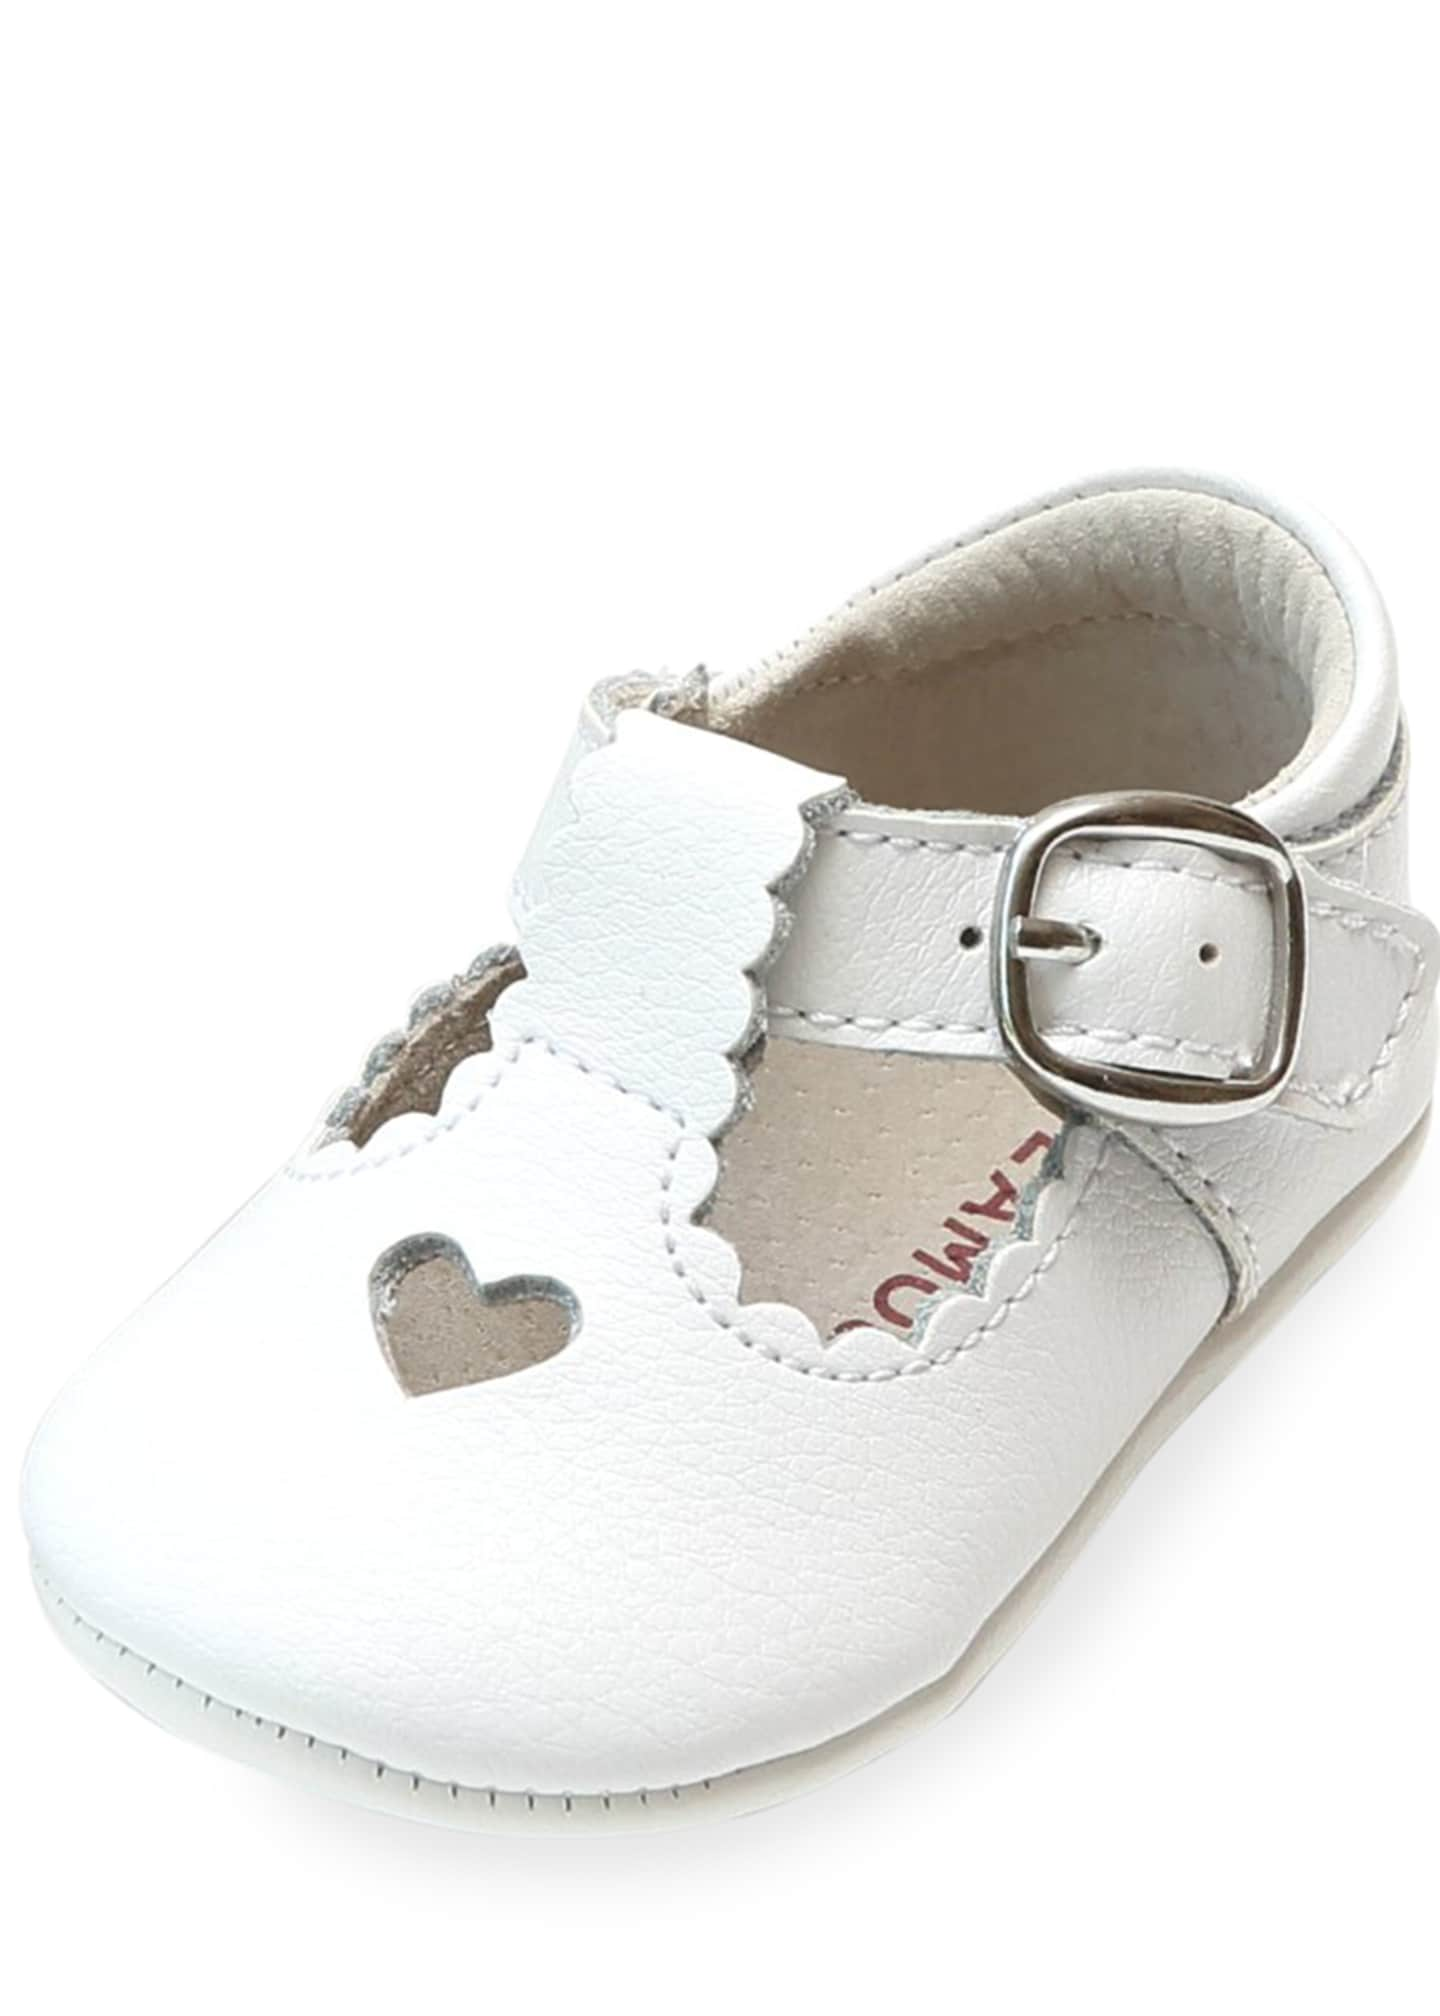 L'Amour Shoes Rosale Heart Cutout Leather Mary Jane